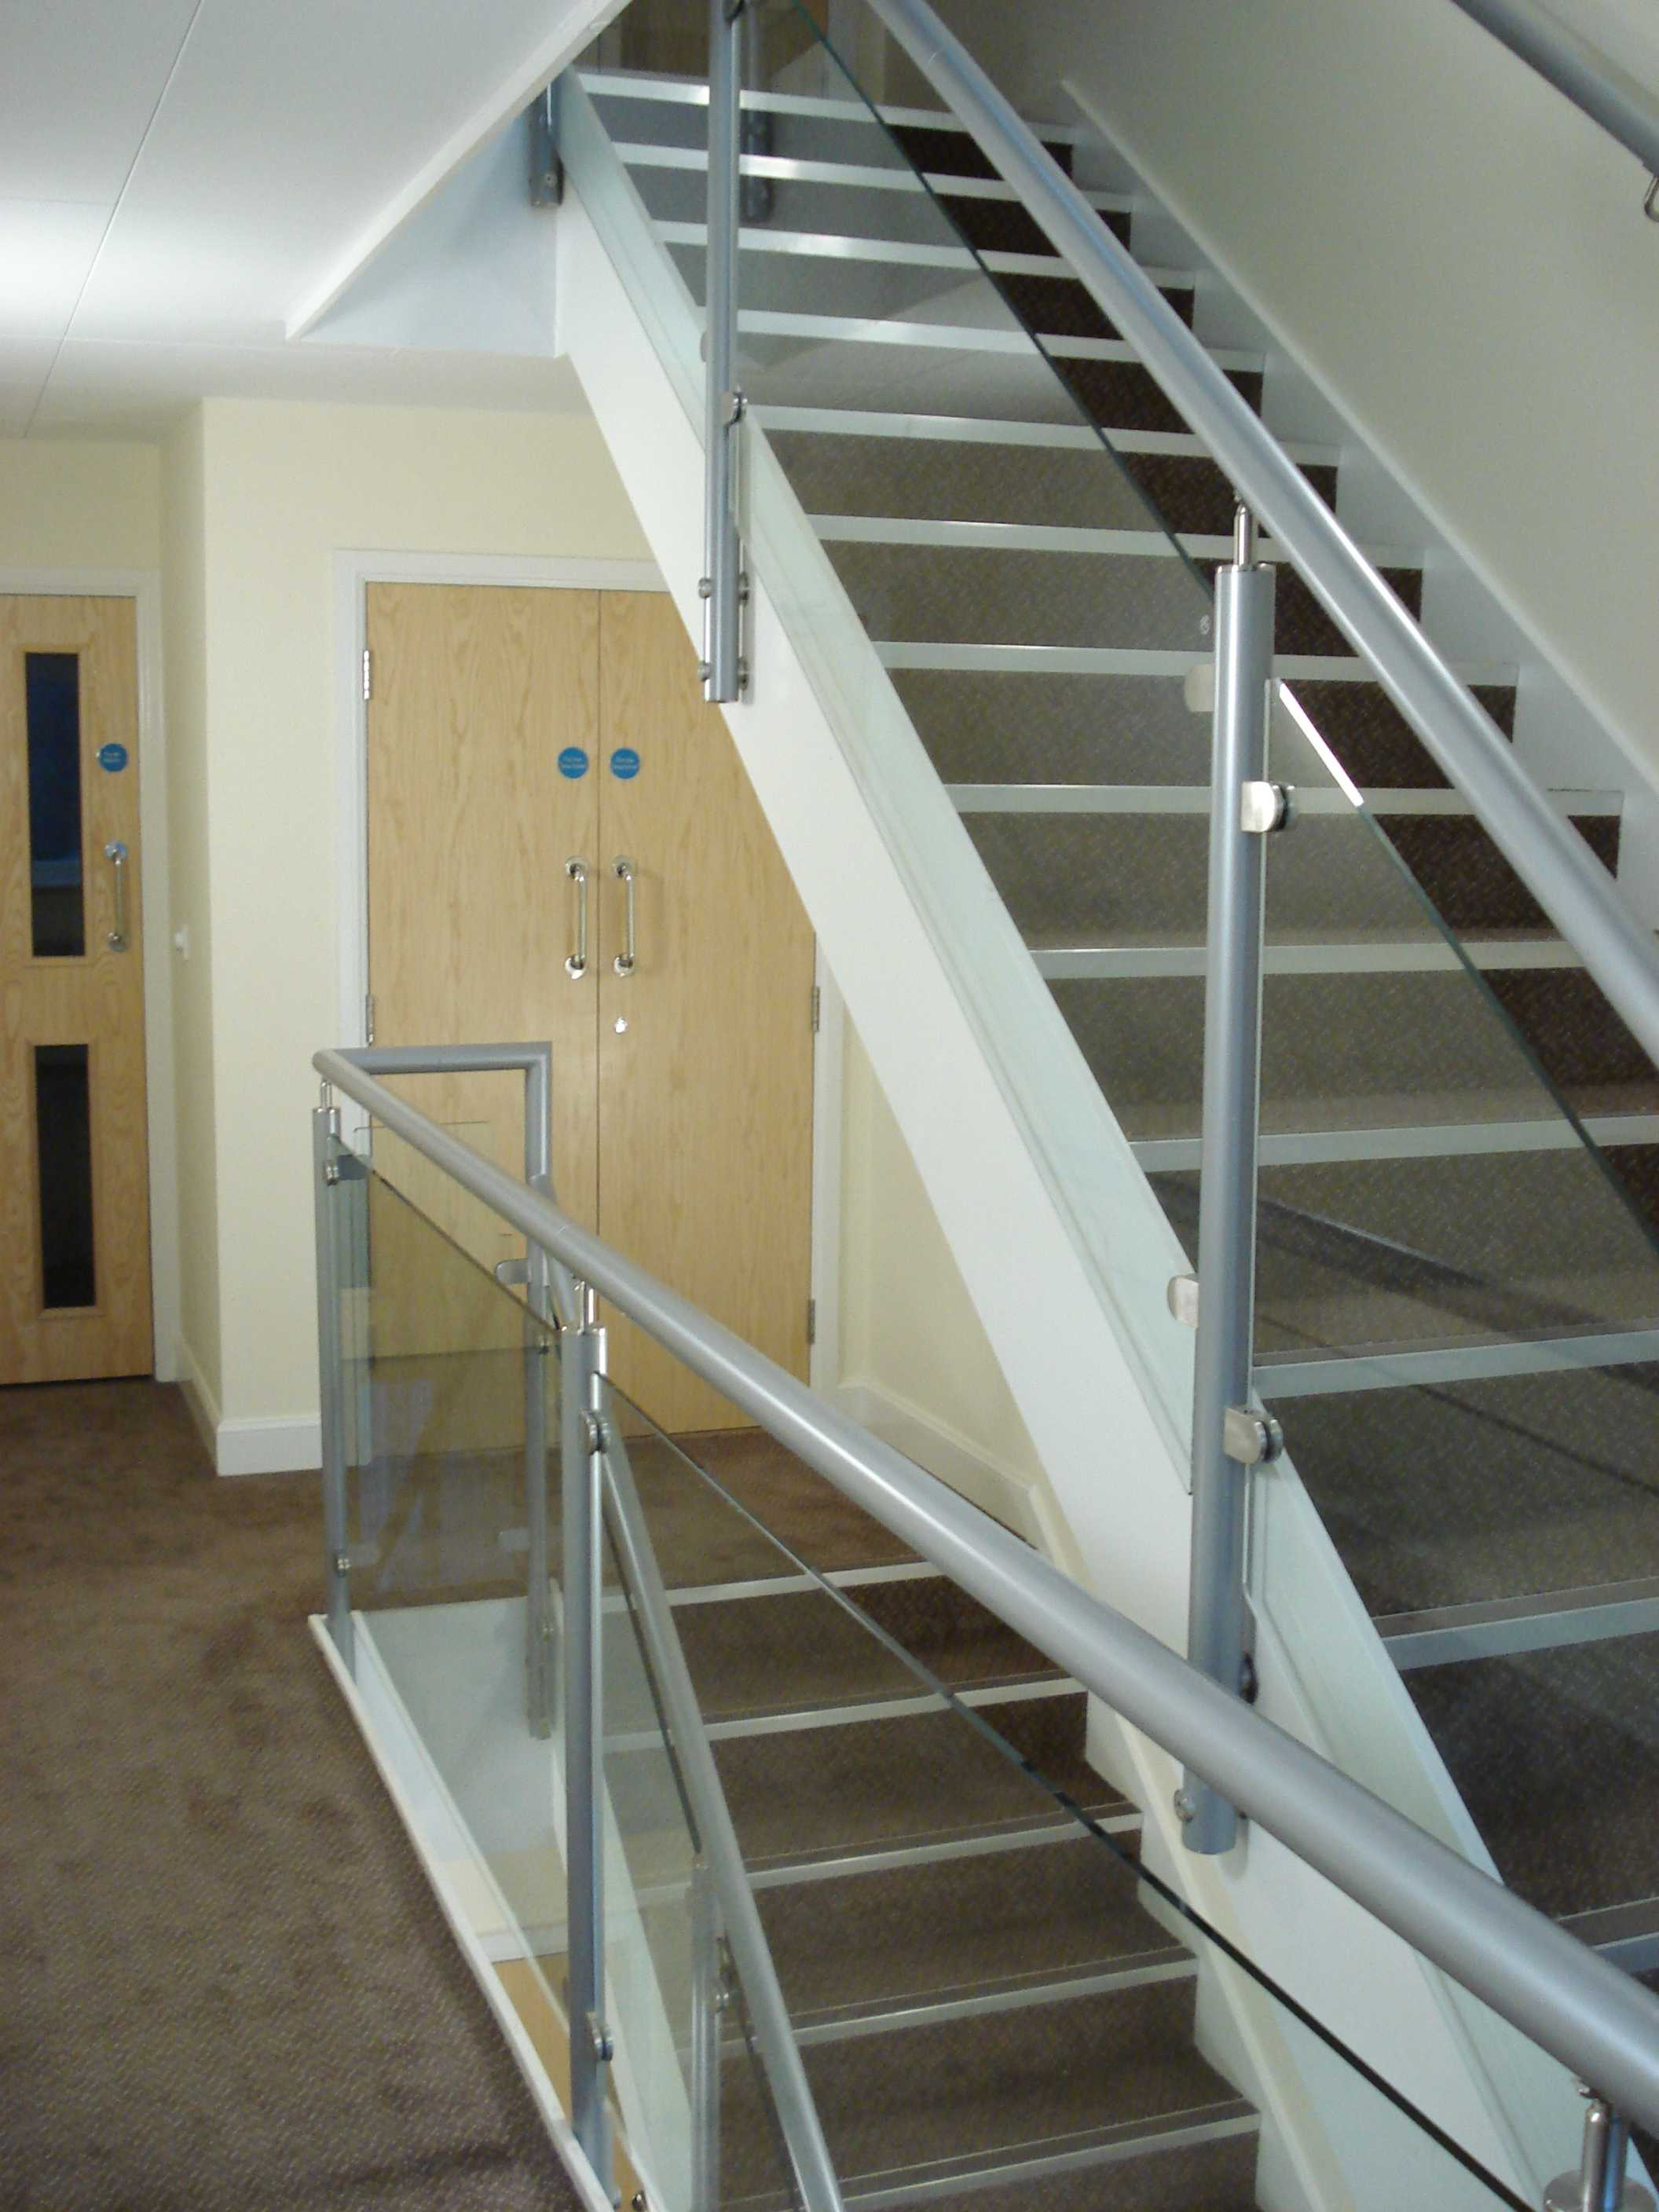 Staircase with aluminium handrail and glass balustrade